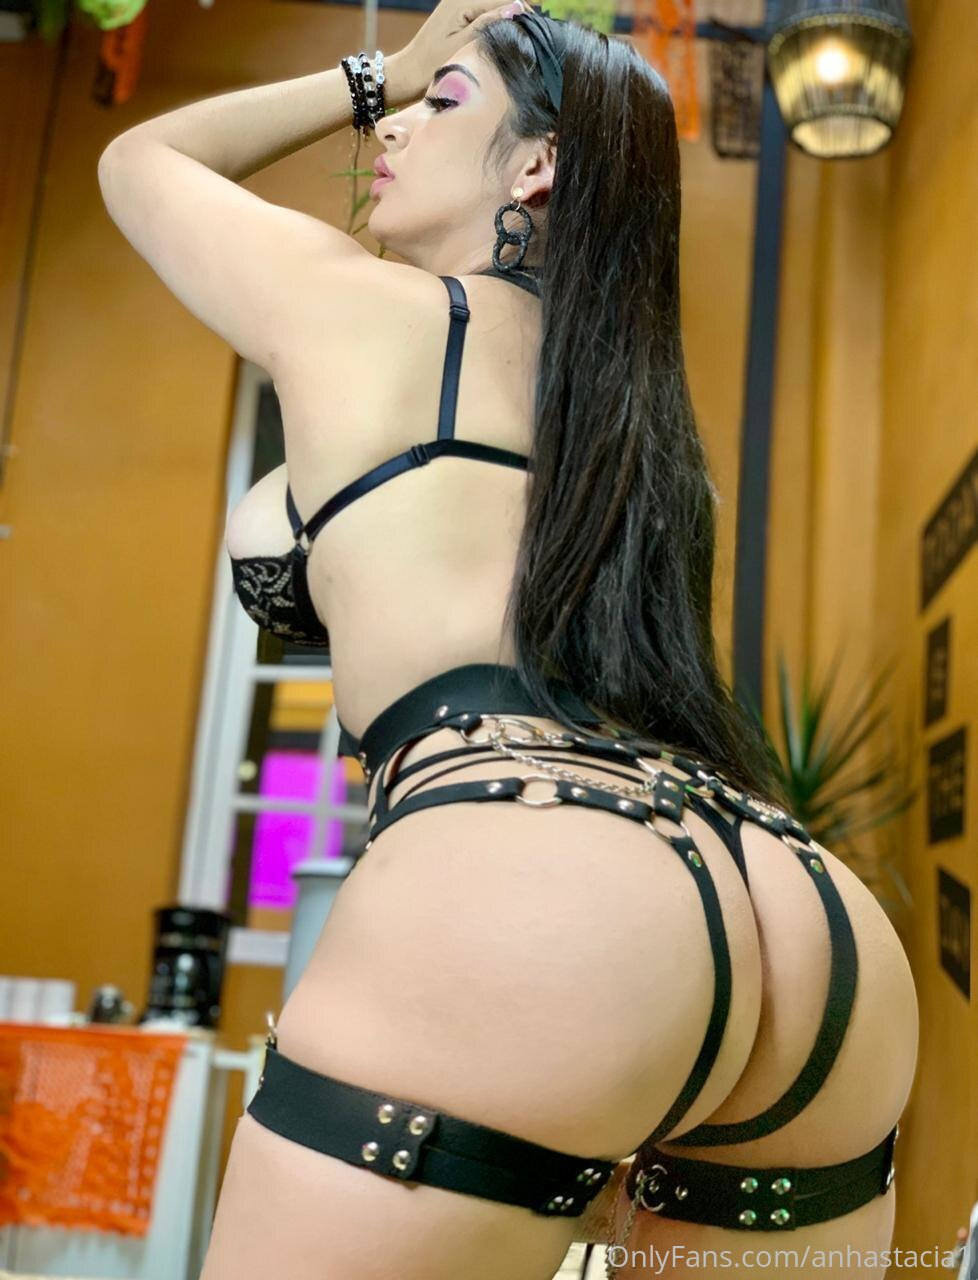 💙INCALL MY HOME OR HOTEL SPECIAL ROOM💙